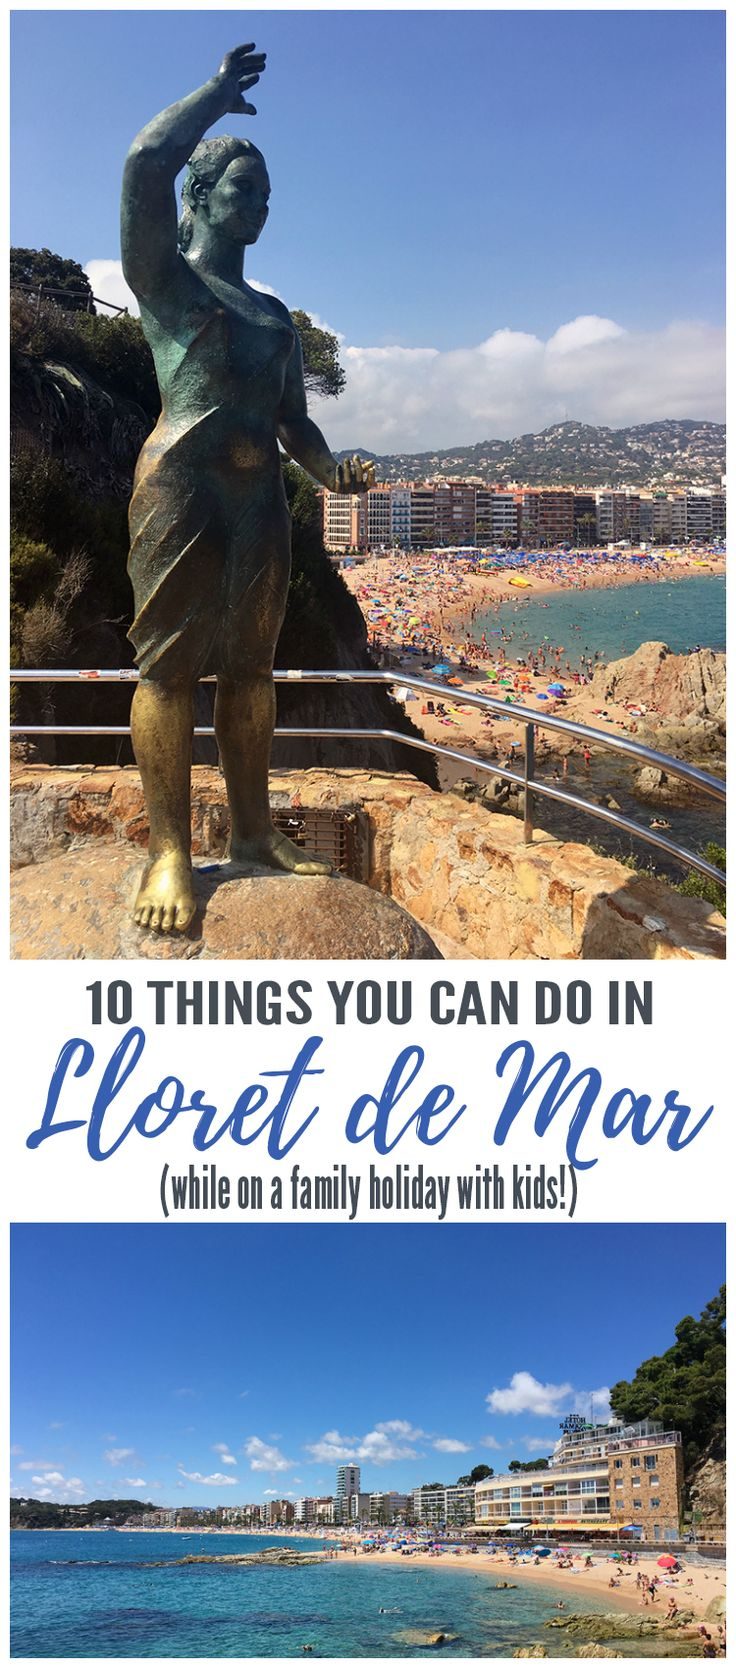 Some fun things to do on a family holiday to Lloret de Mar!